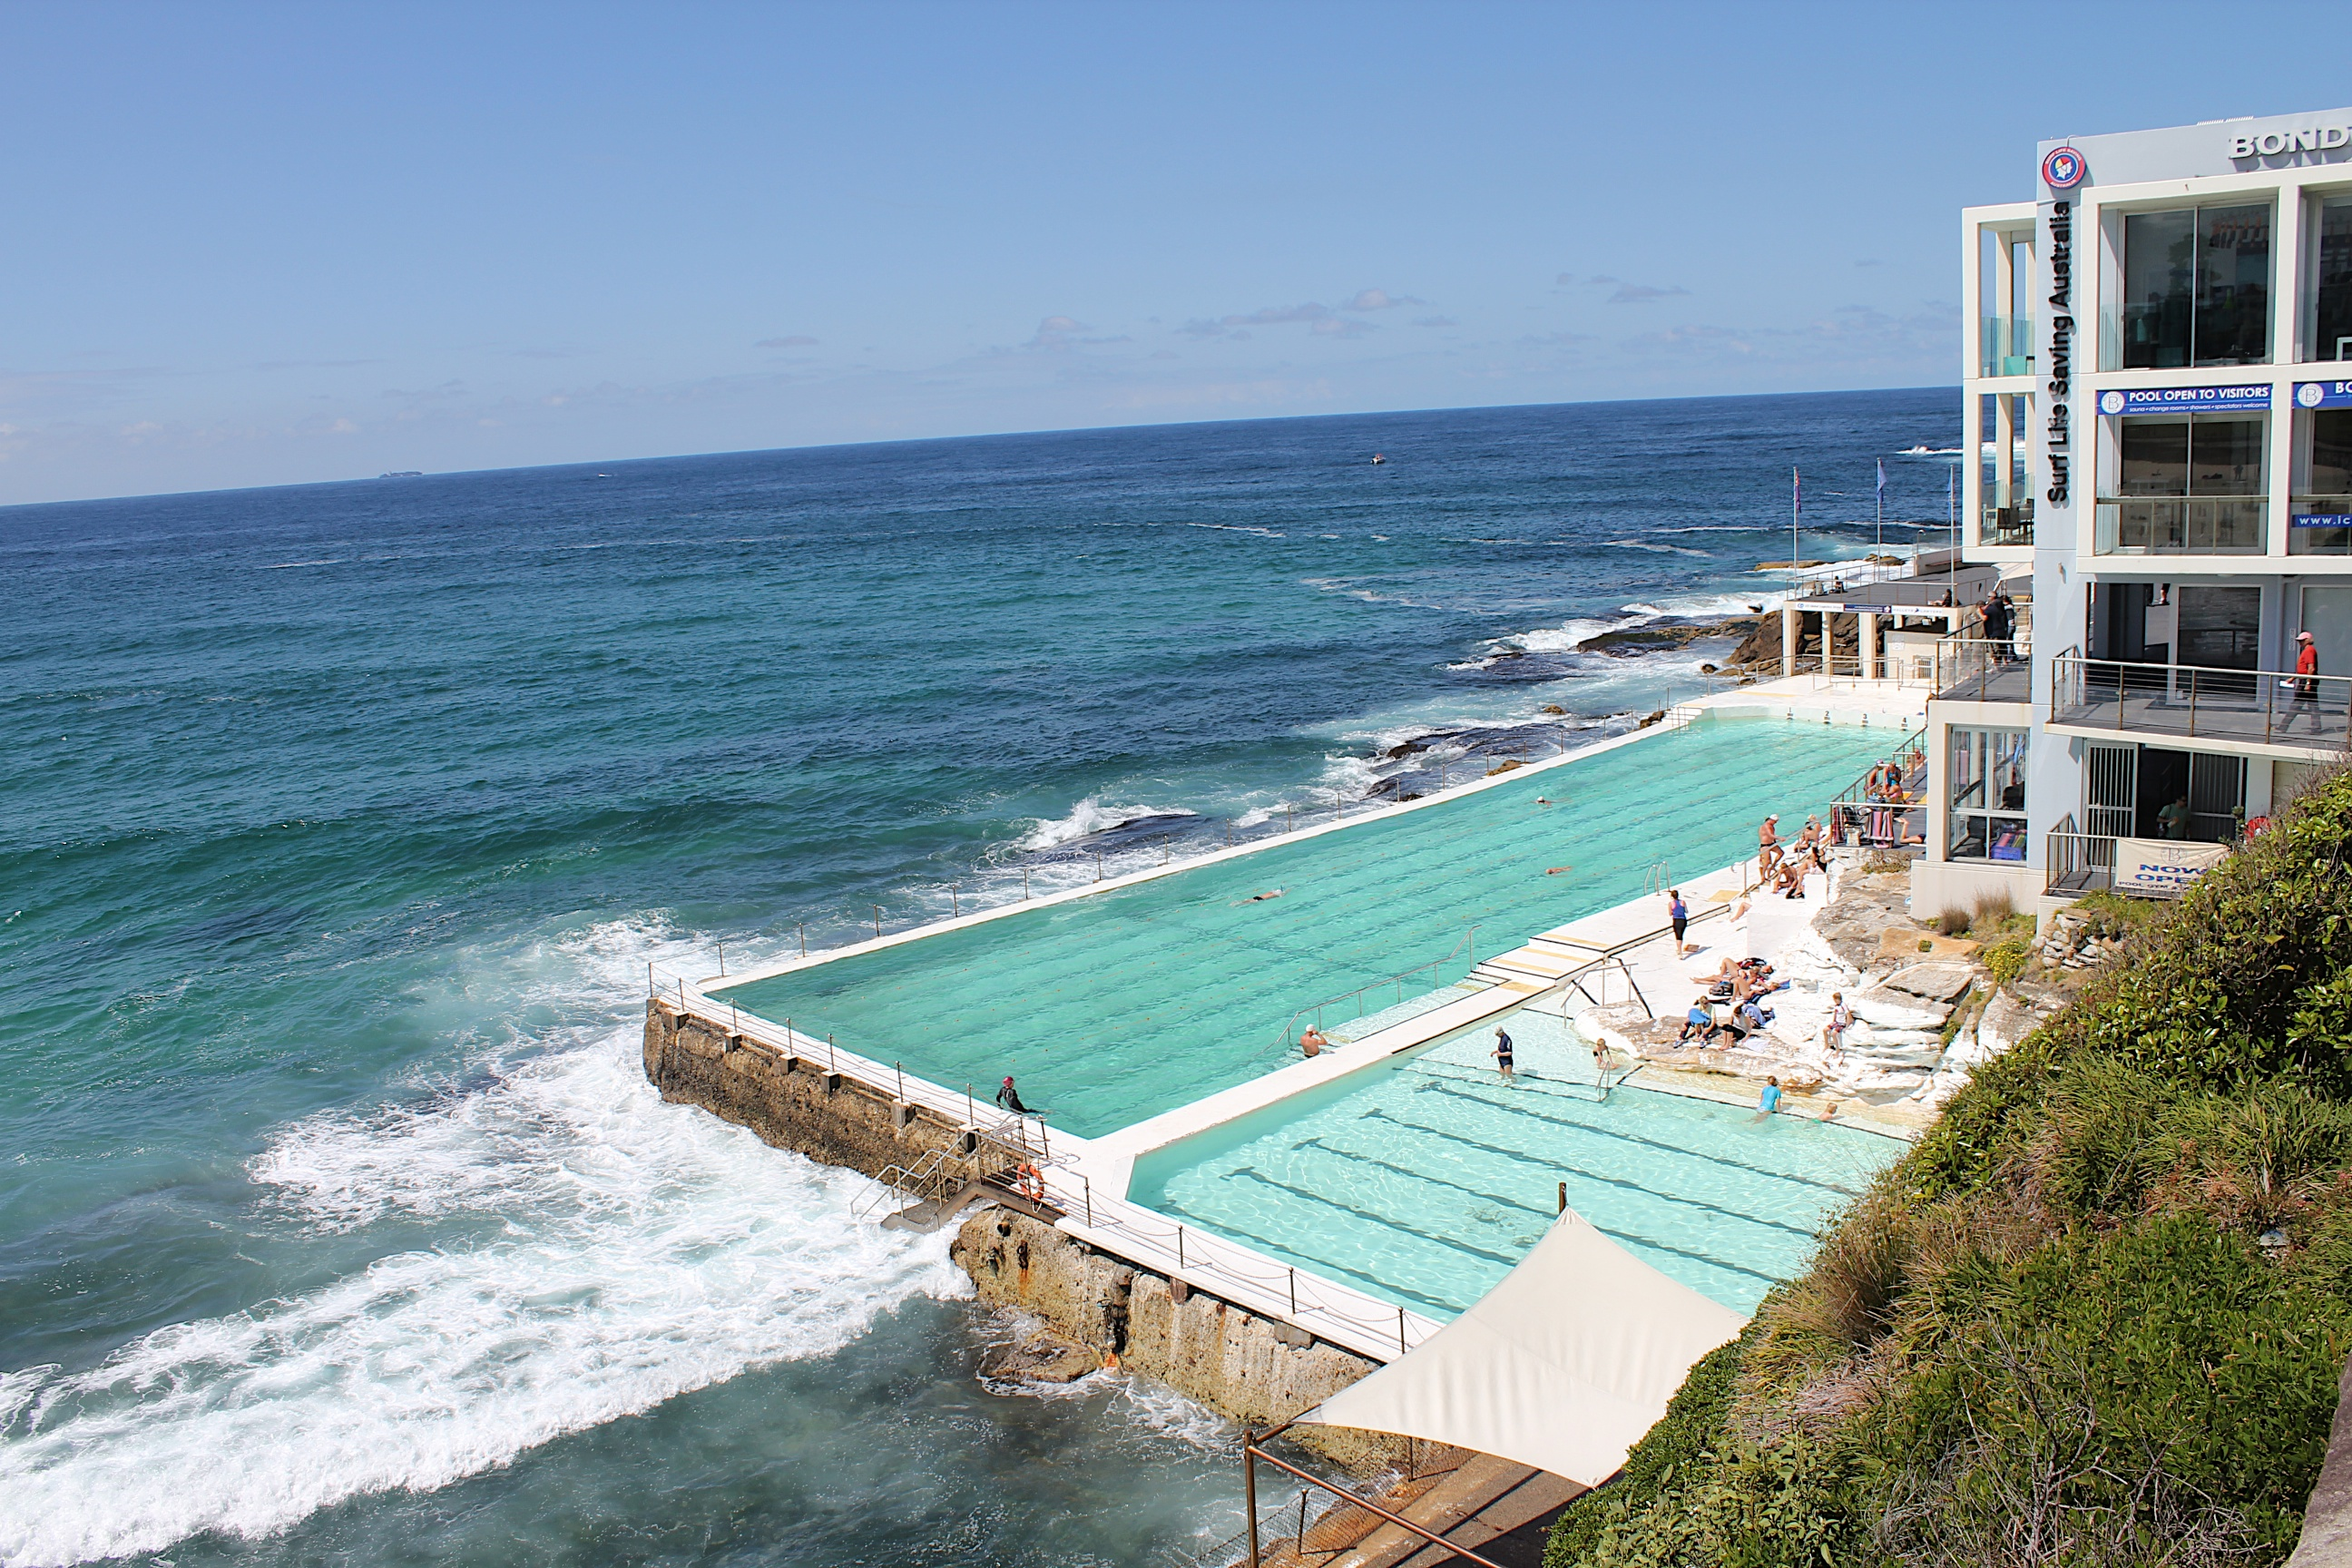 The Bondi Icebergs pools are right next to Bondi Beach and allow swimmers a safe environment. It's one of the oldes Surf Live Saving Club's of Australia.